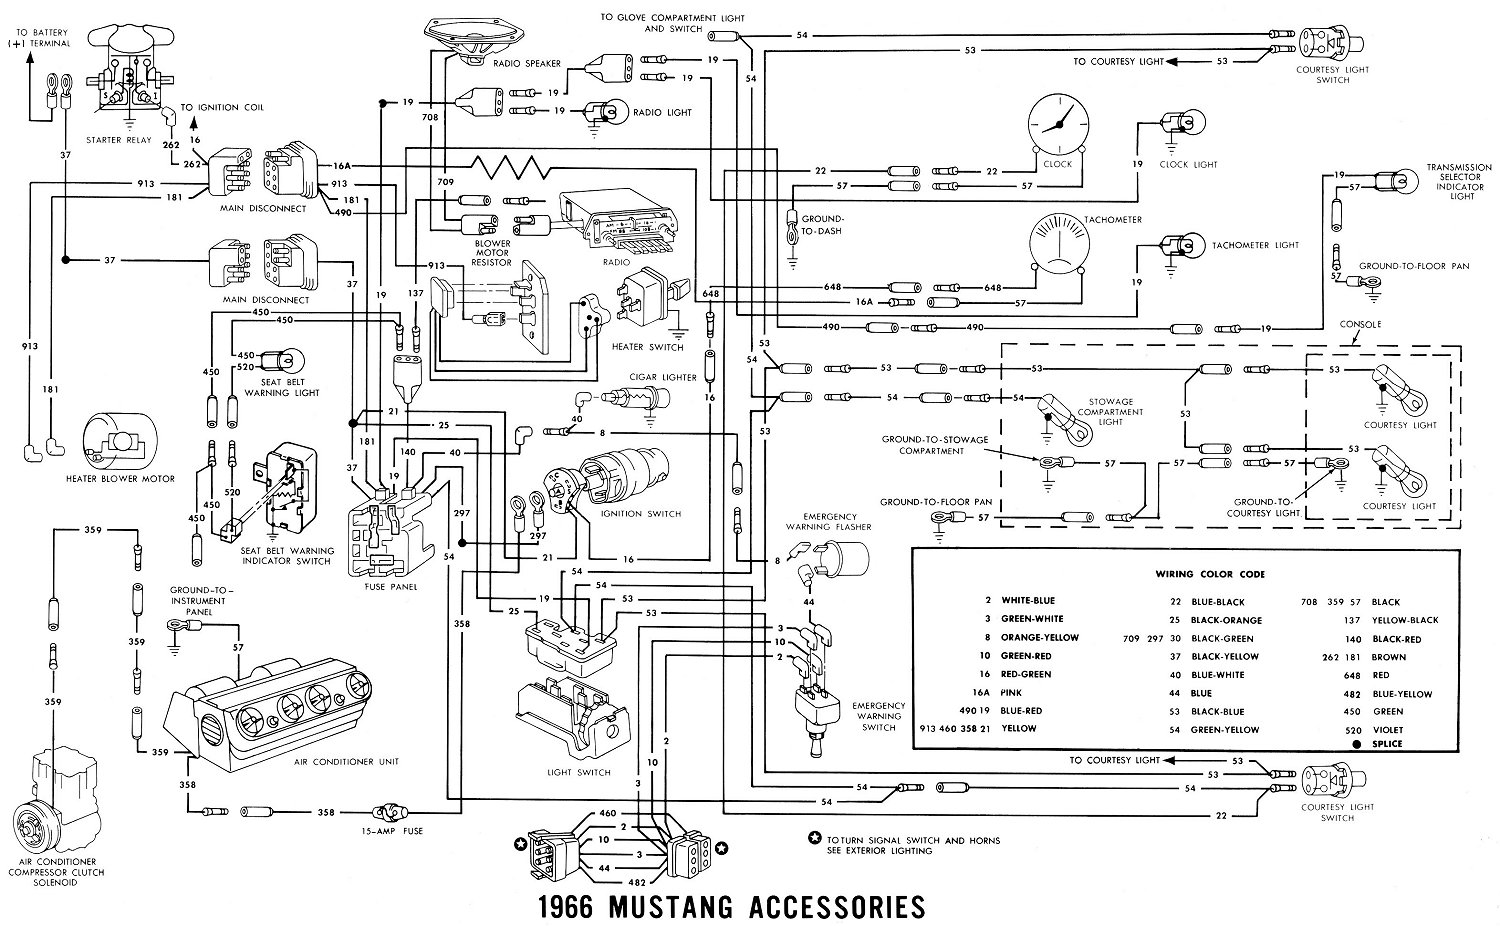 1966 mustang wiring diagrams - average joe restoration 1966 mustang color wiring diagram #4